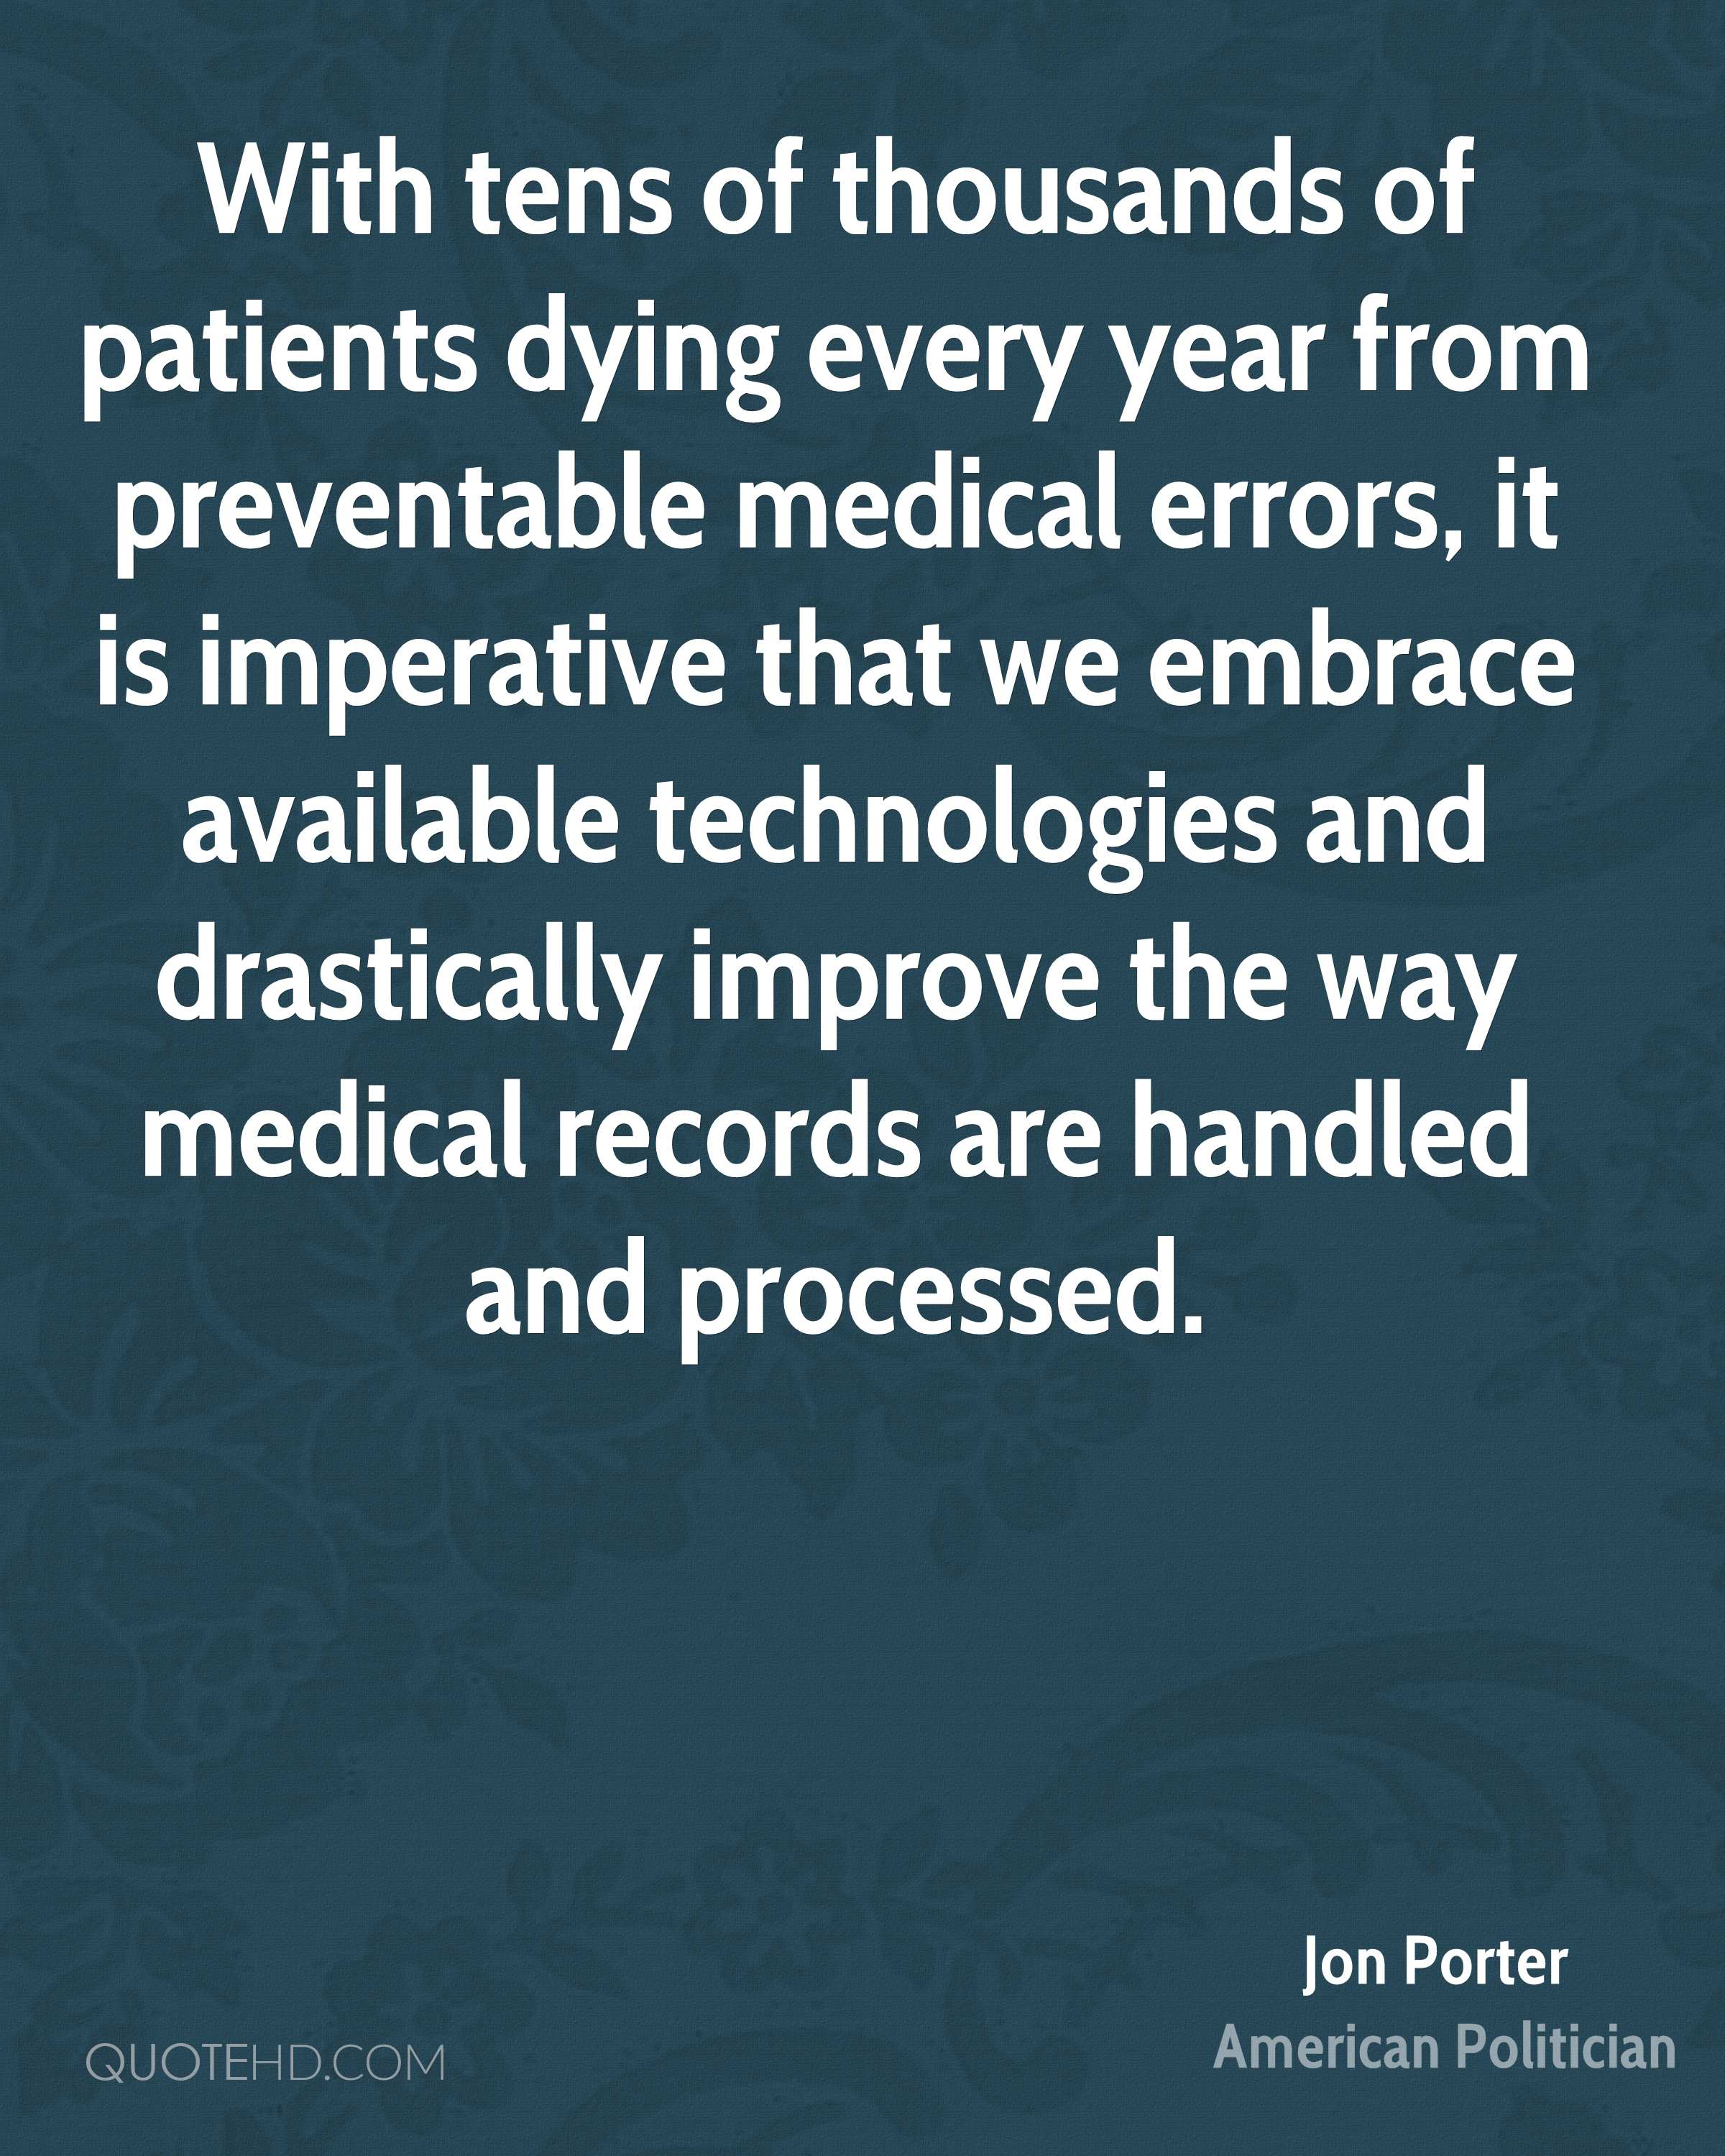 With tens of thousands of patients dying every year from preventable medical errors, it is imperative that we embrace available technologies and drastically improve the way medical records are handled and processed.